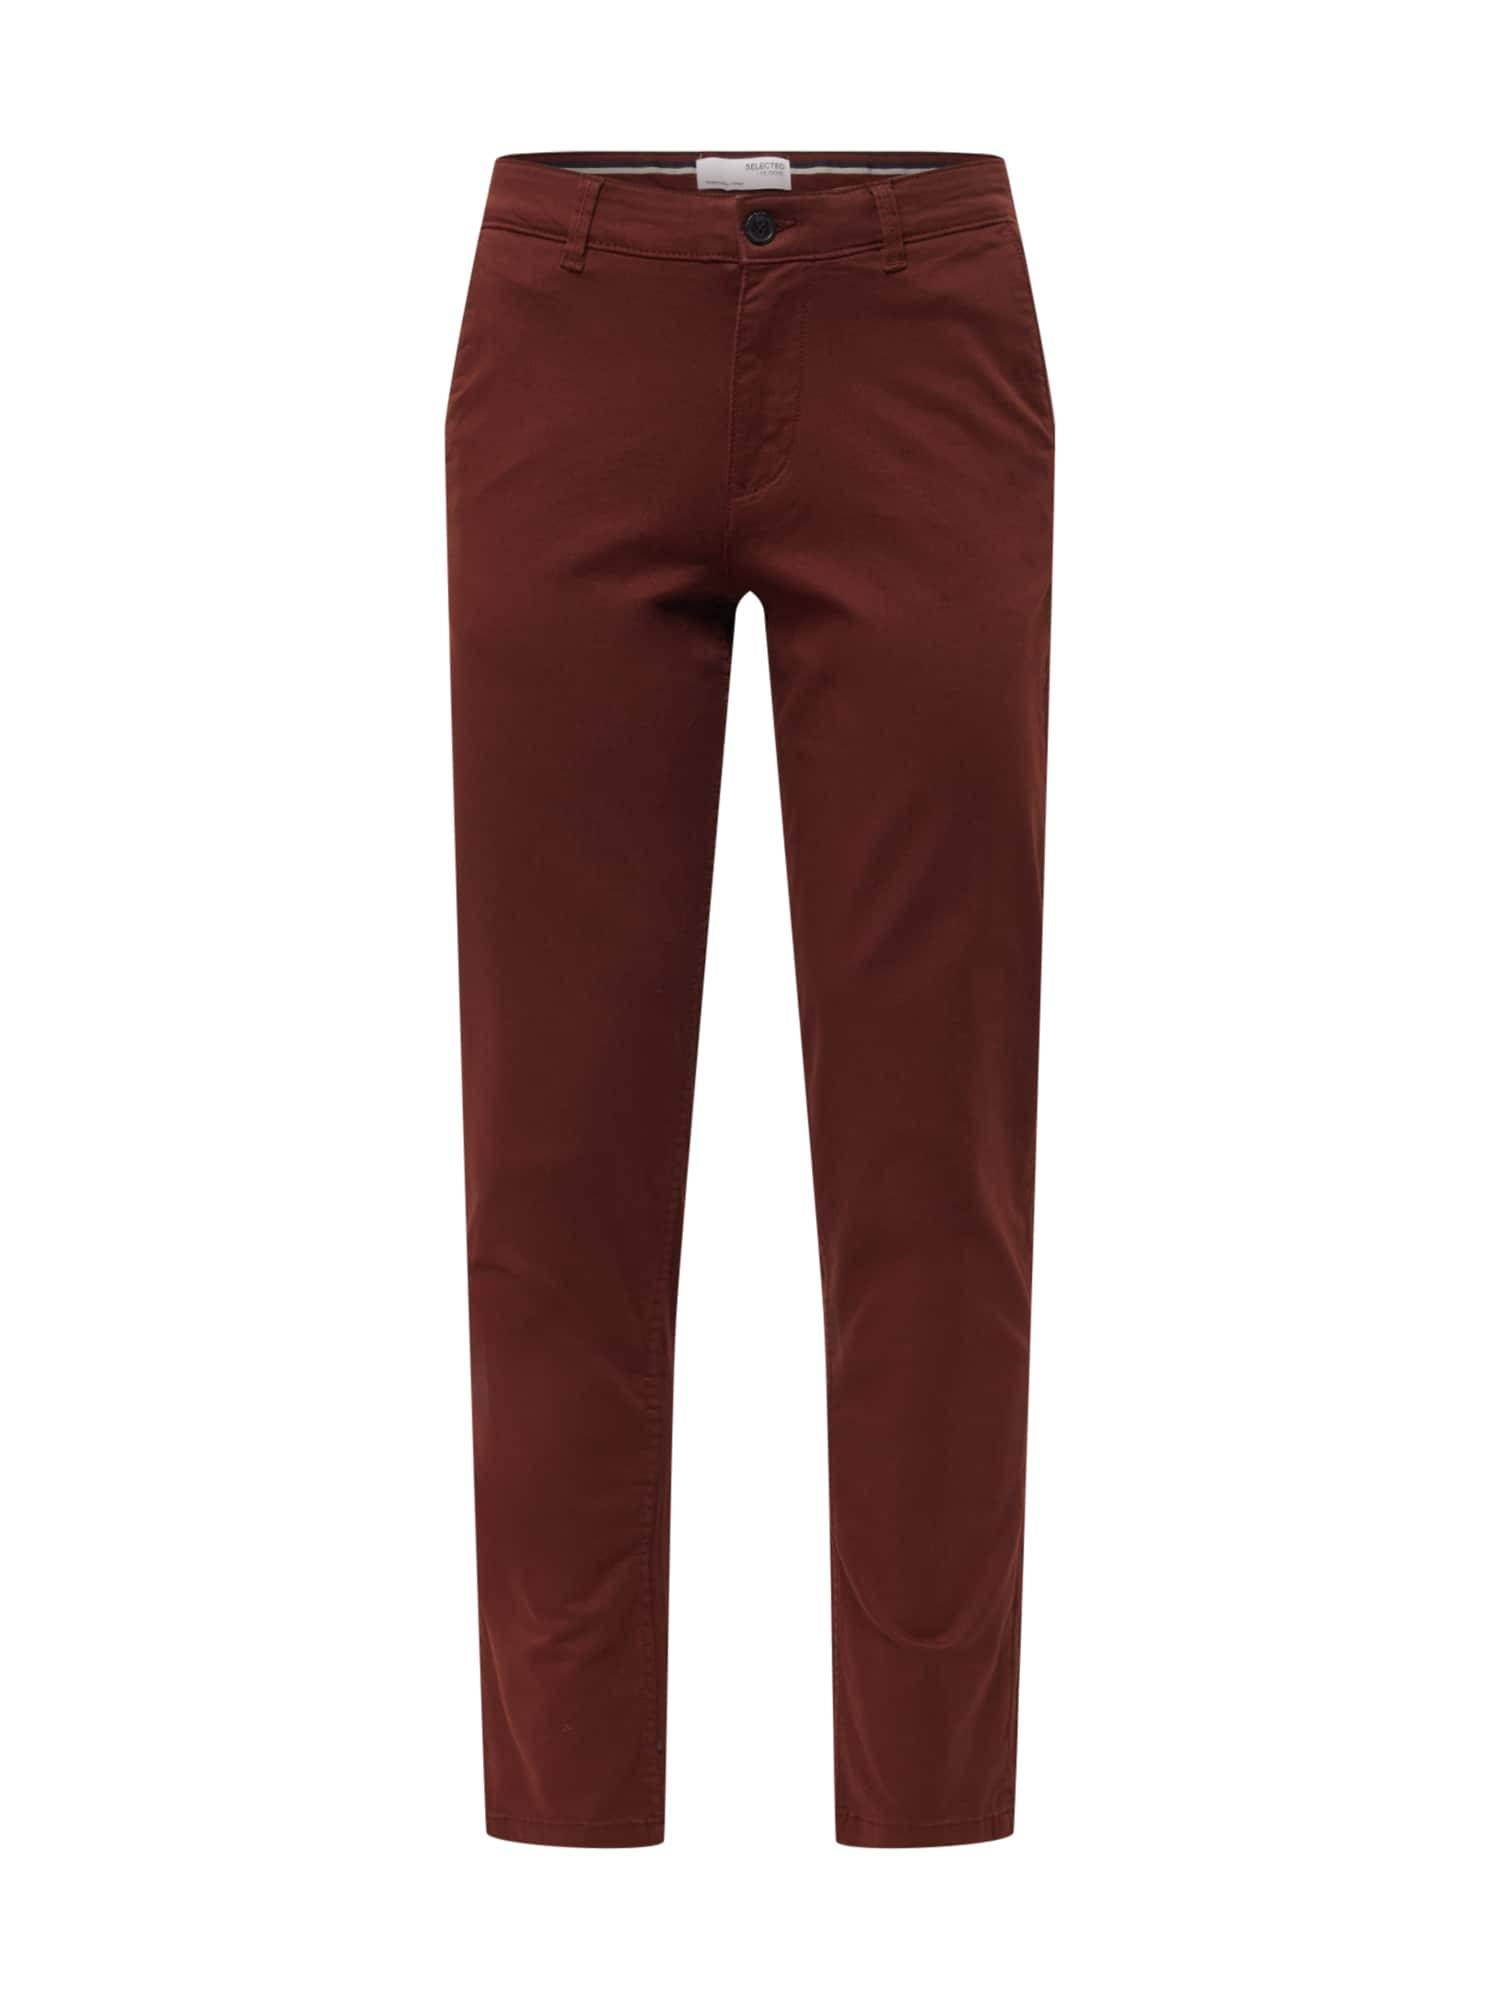 SELECTED HOMME Pantalon chino 'NEW PARIS'  - Marron - Taille: 31 - male